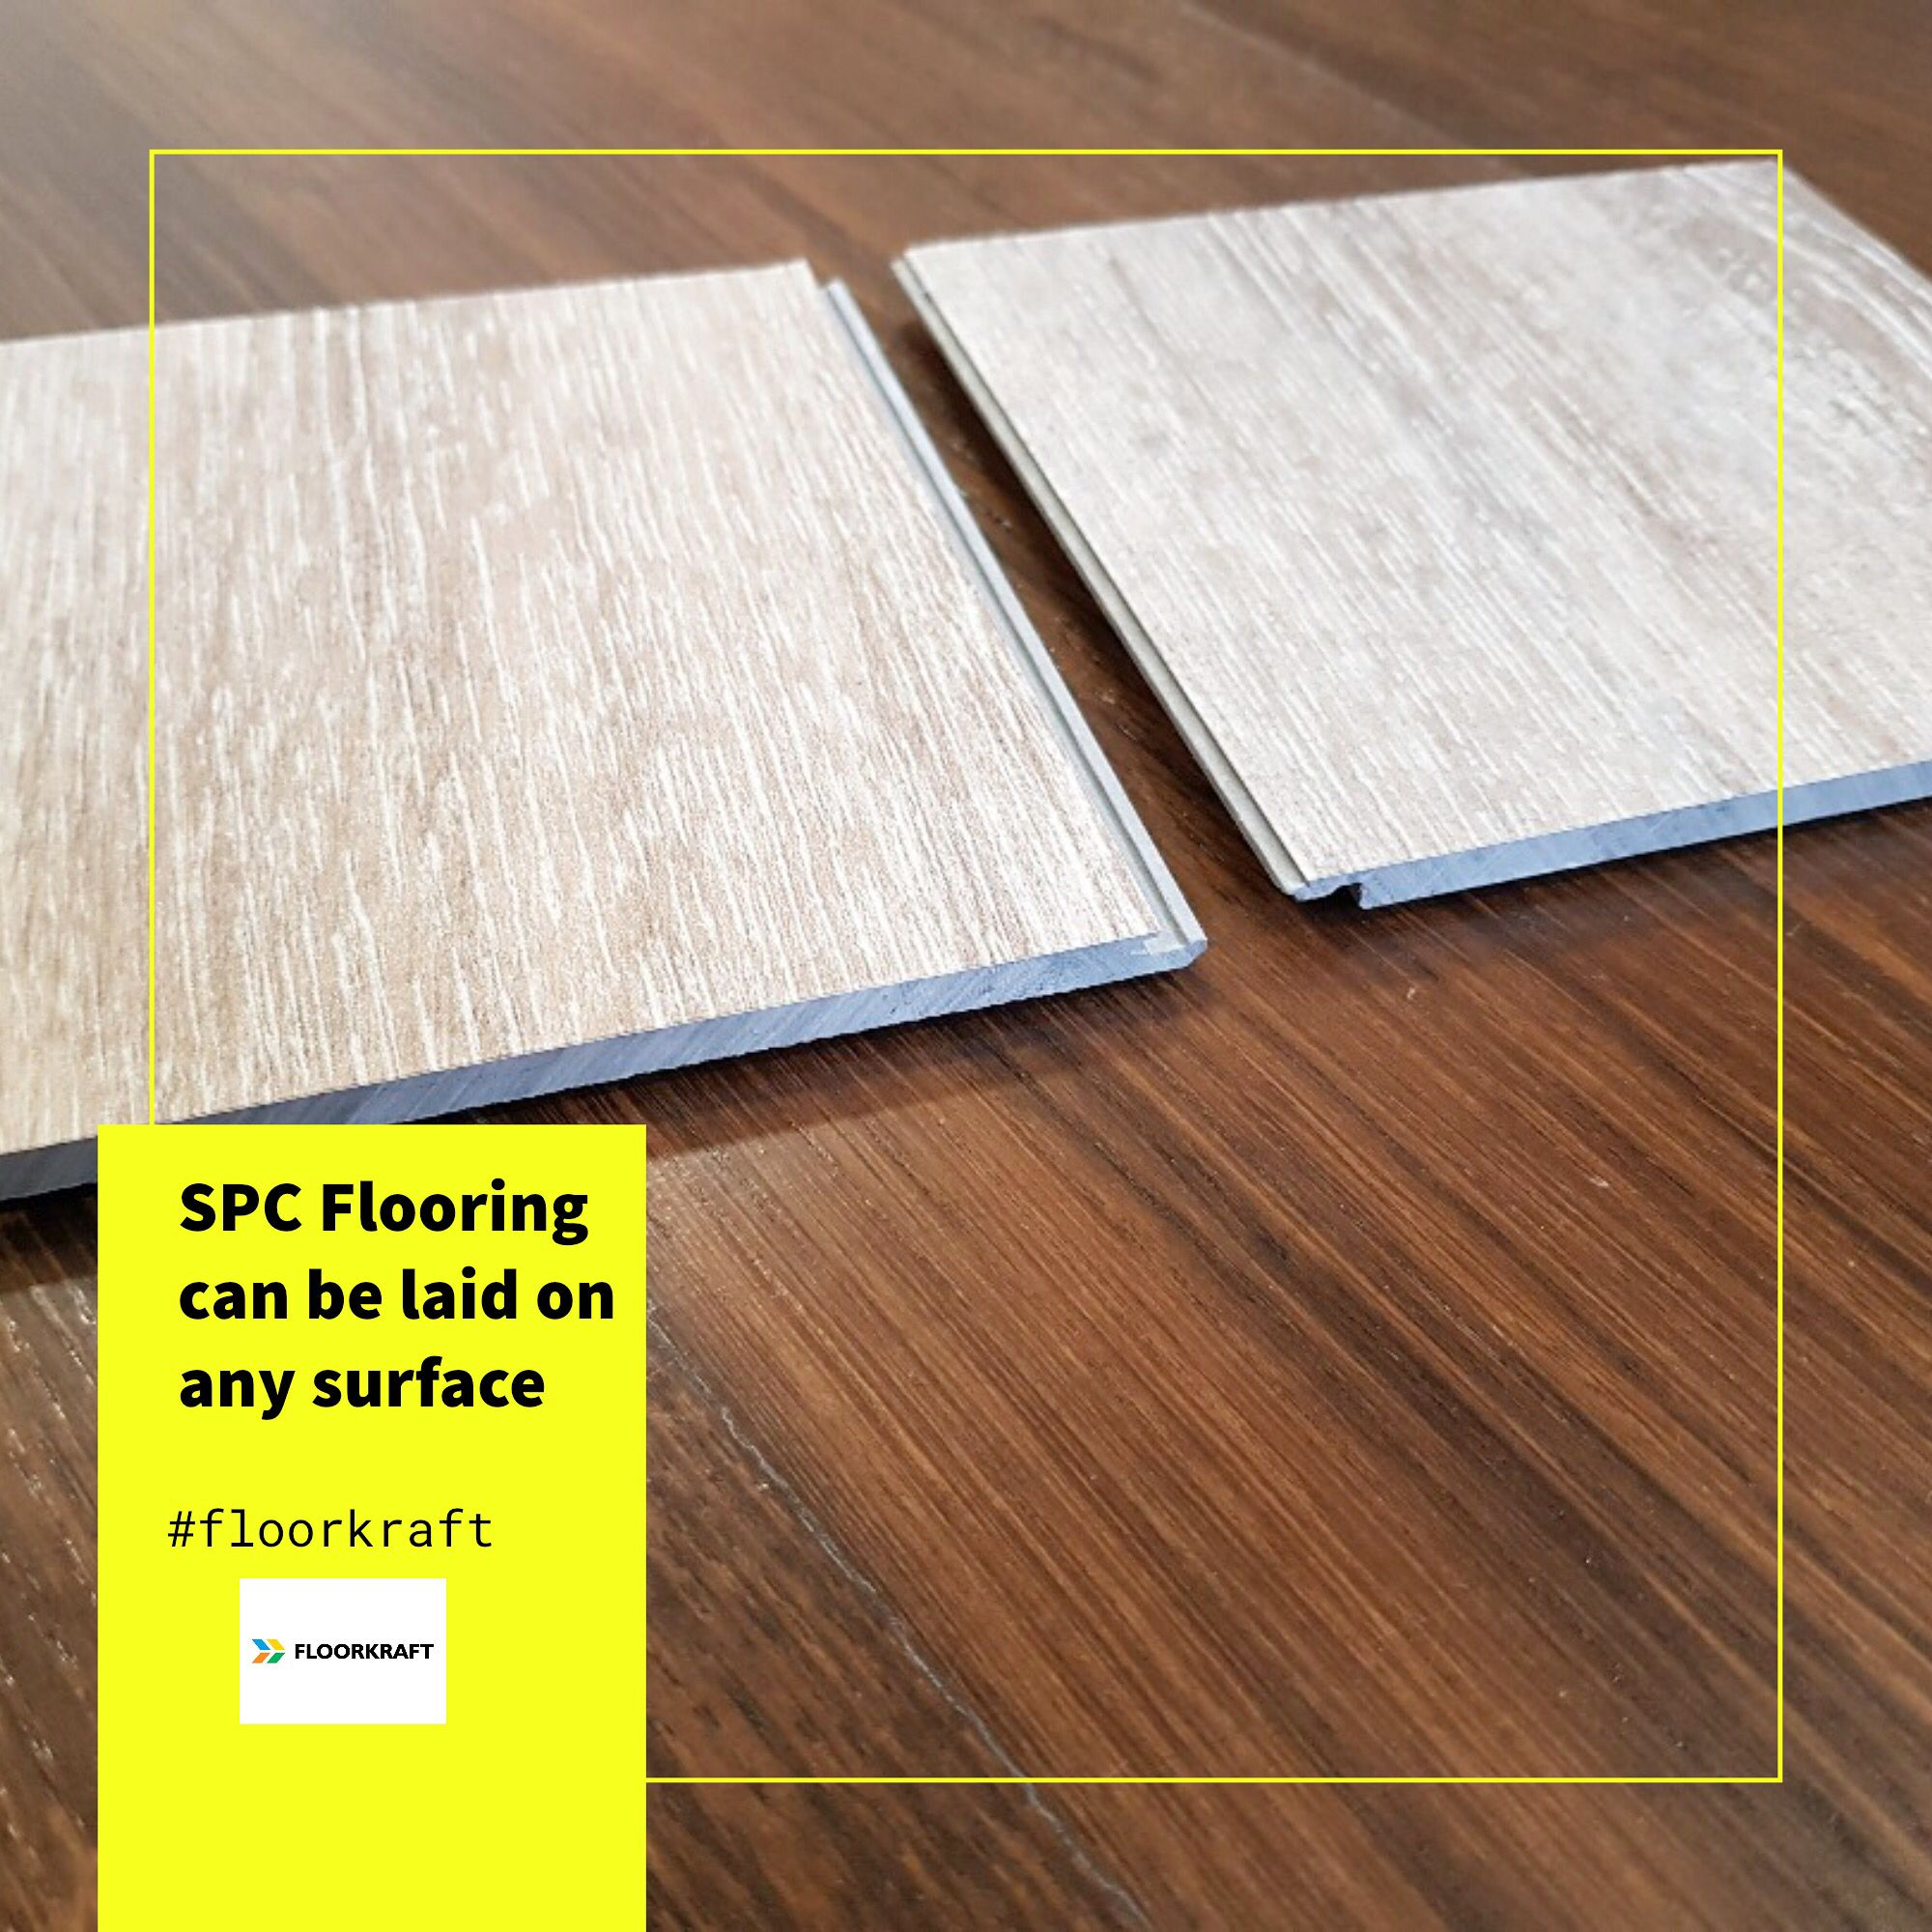 Can You Install Rubber Flooring Over Carpet: Can U Put Laminate Flooring Over Tile